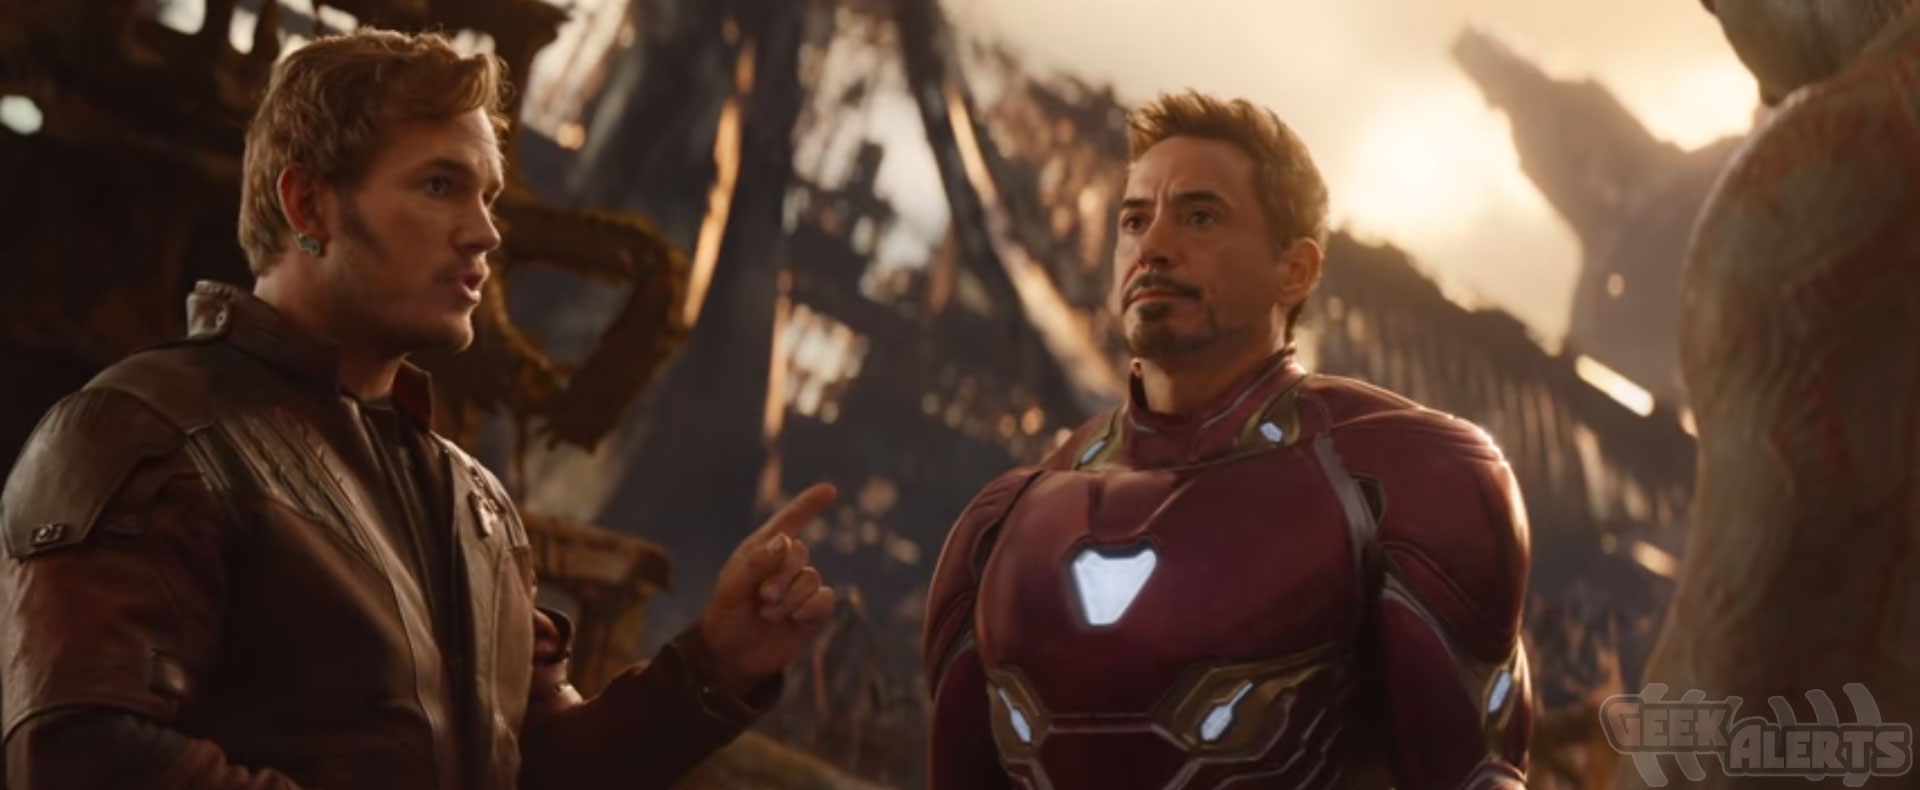 New Marvel Studios' Avengers: Infinity War – Official Trailer